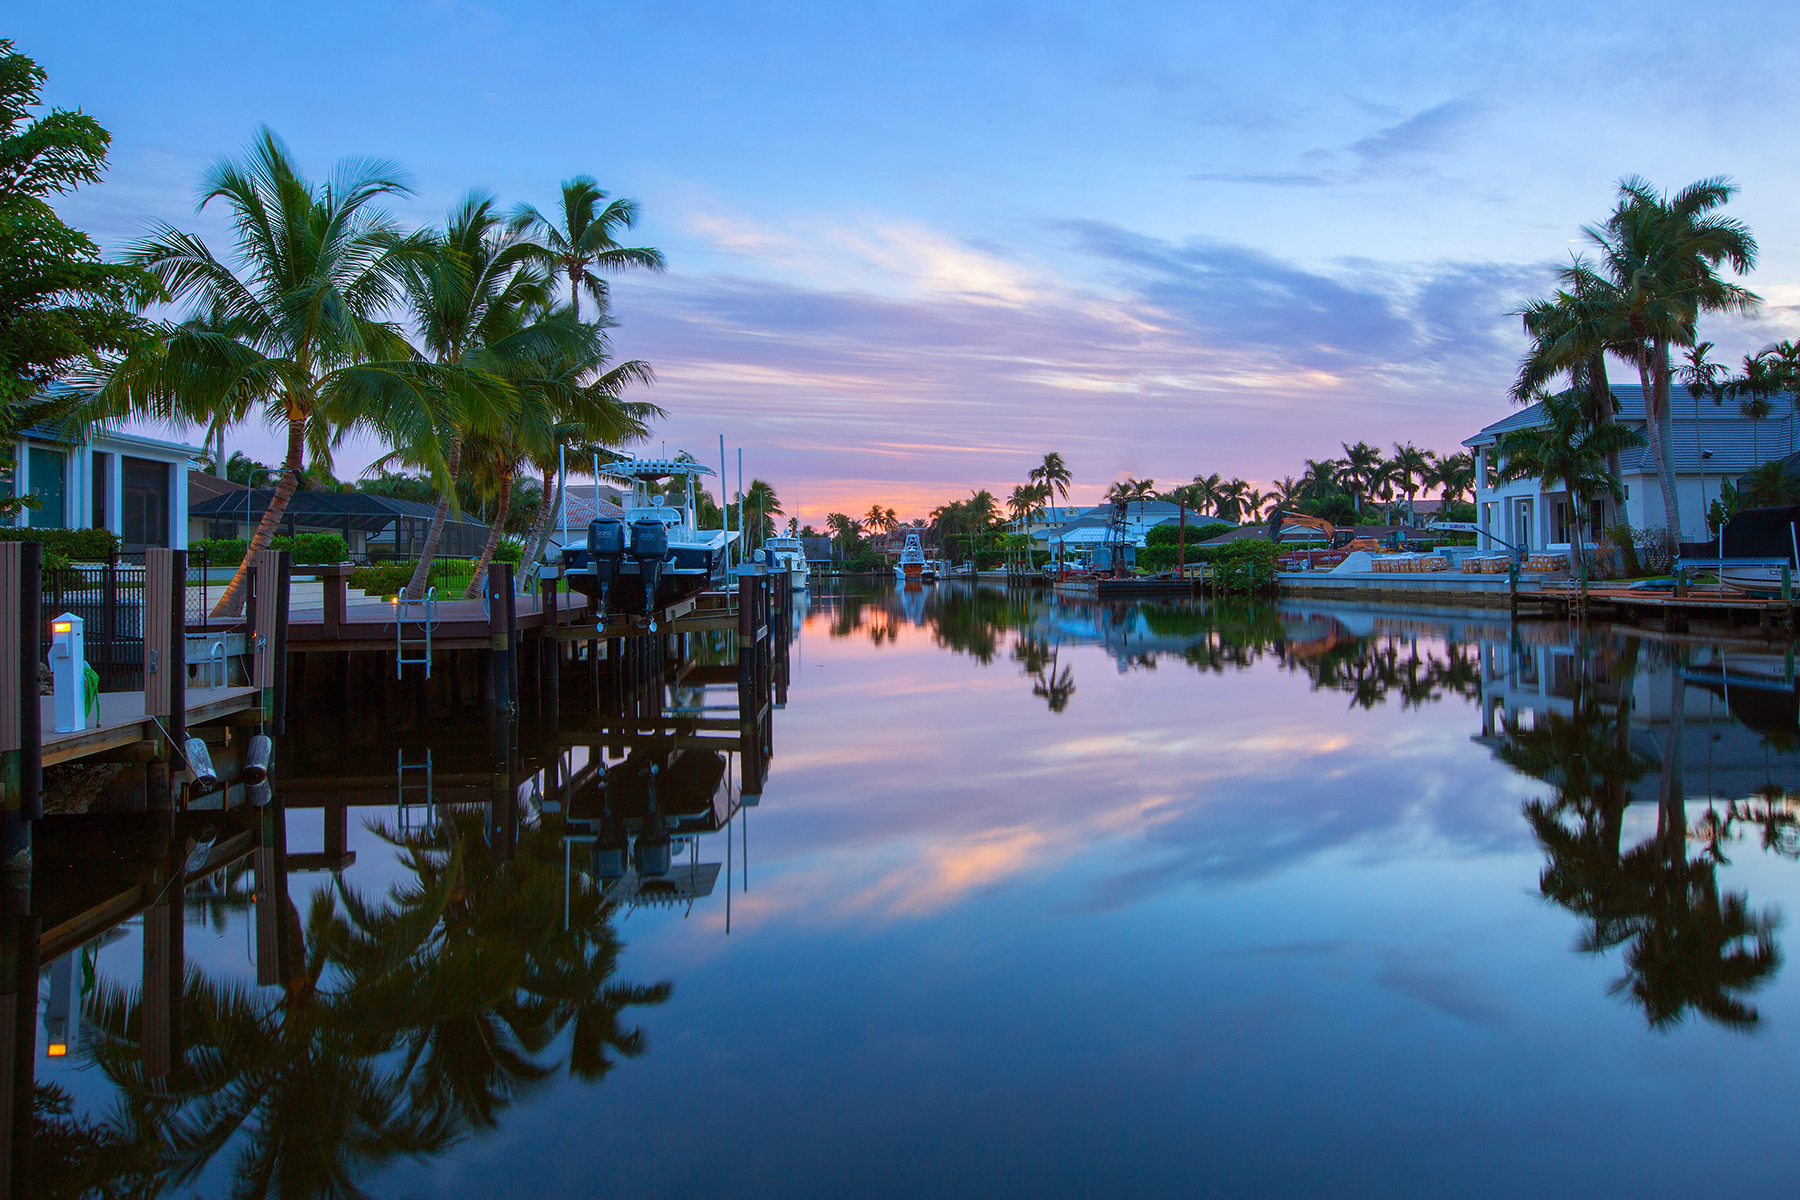 Single Family Home for Sale at AQUALANE SHORES 1826 7th St S, Naples, Florida 34102 United States